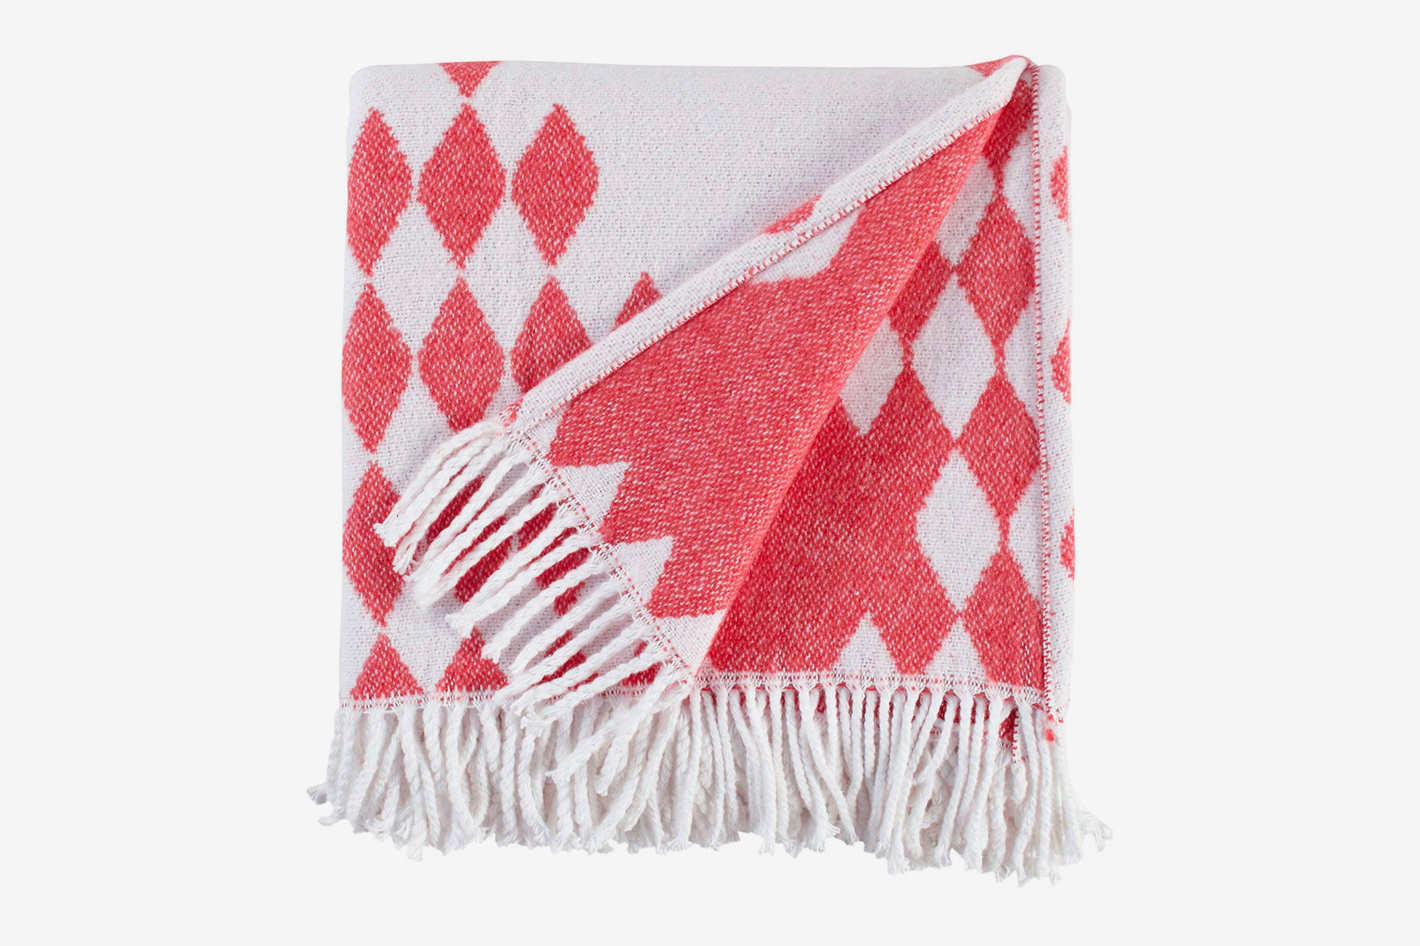 "Rivet Colorful Geometric Diamond Jacquard Reversible Throw Blanket, 50""x60"", Coral, White"